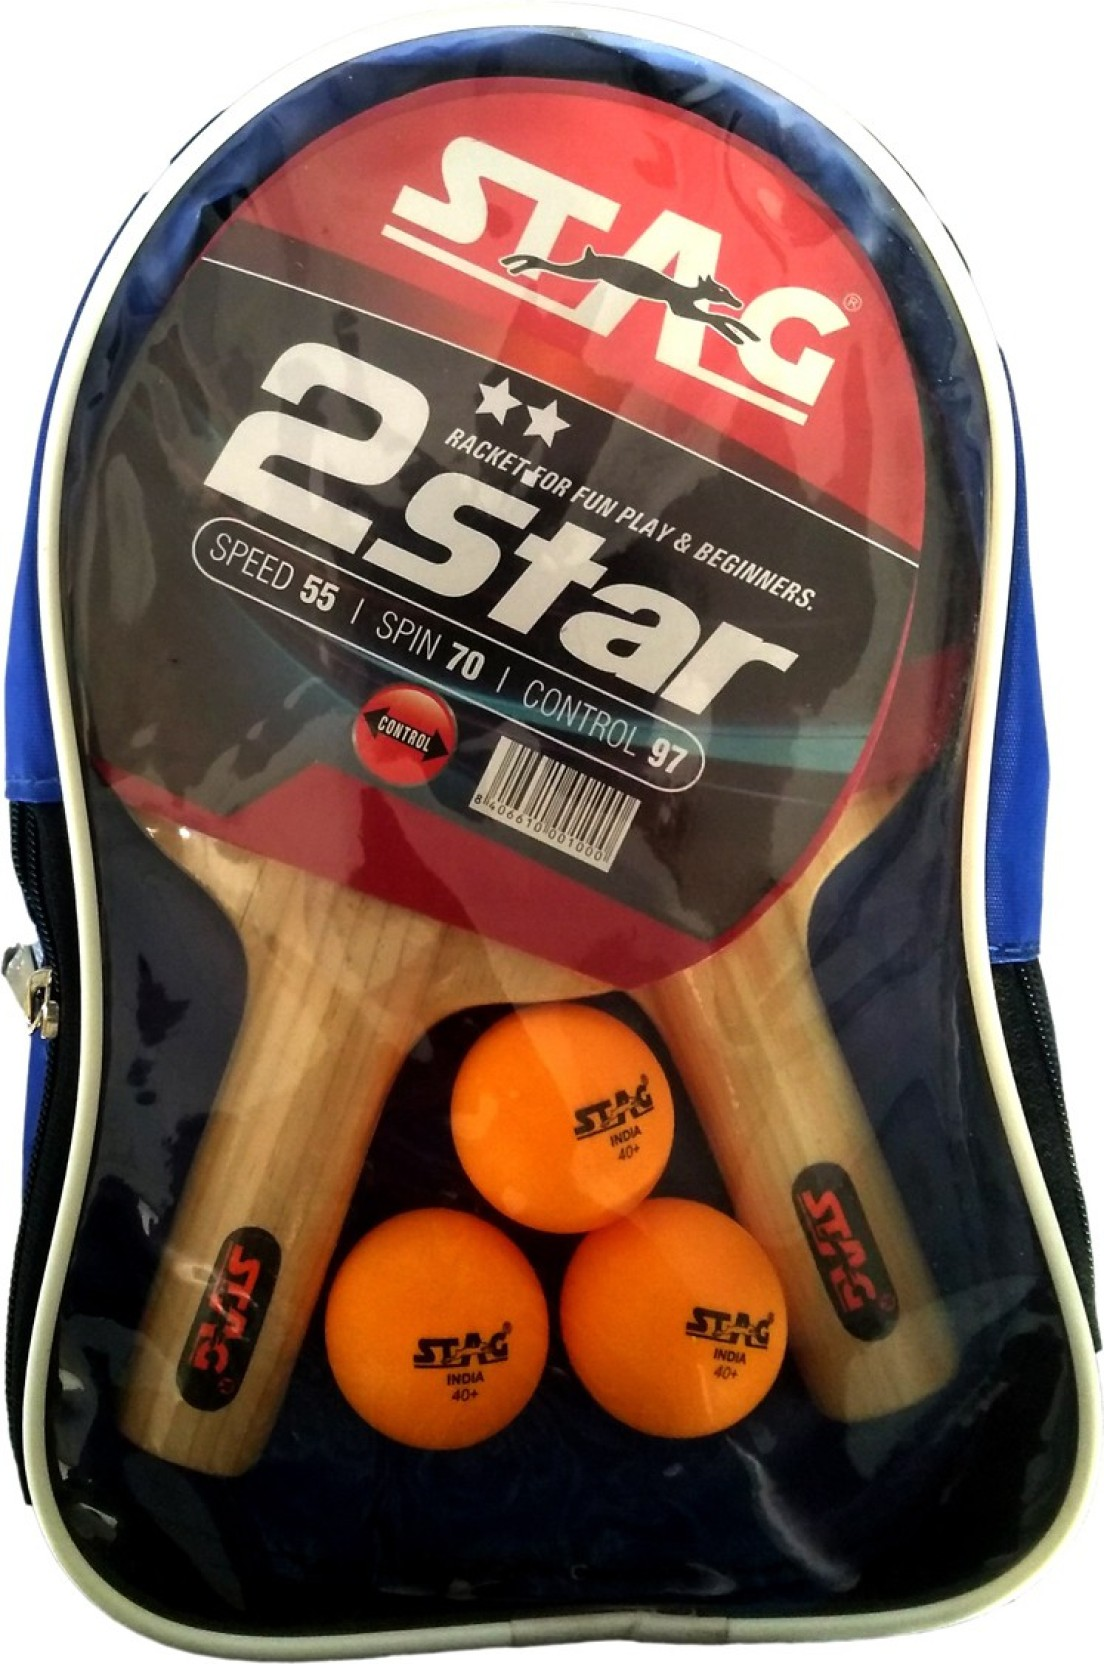 Stag 2 Star Playset With Bat3 Balls Table Tennis Kit Buy Racket Diagram Parts Of A Racquet Beginners Guide Add To Cart